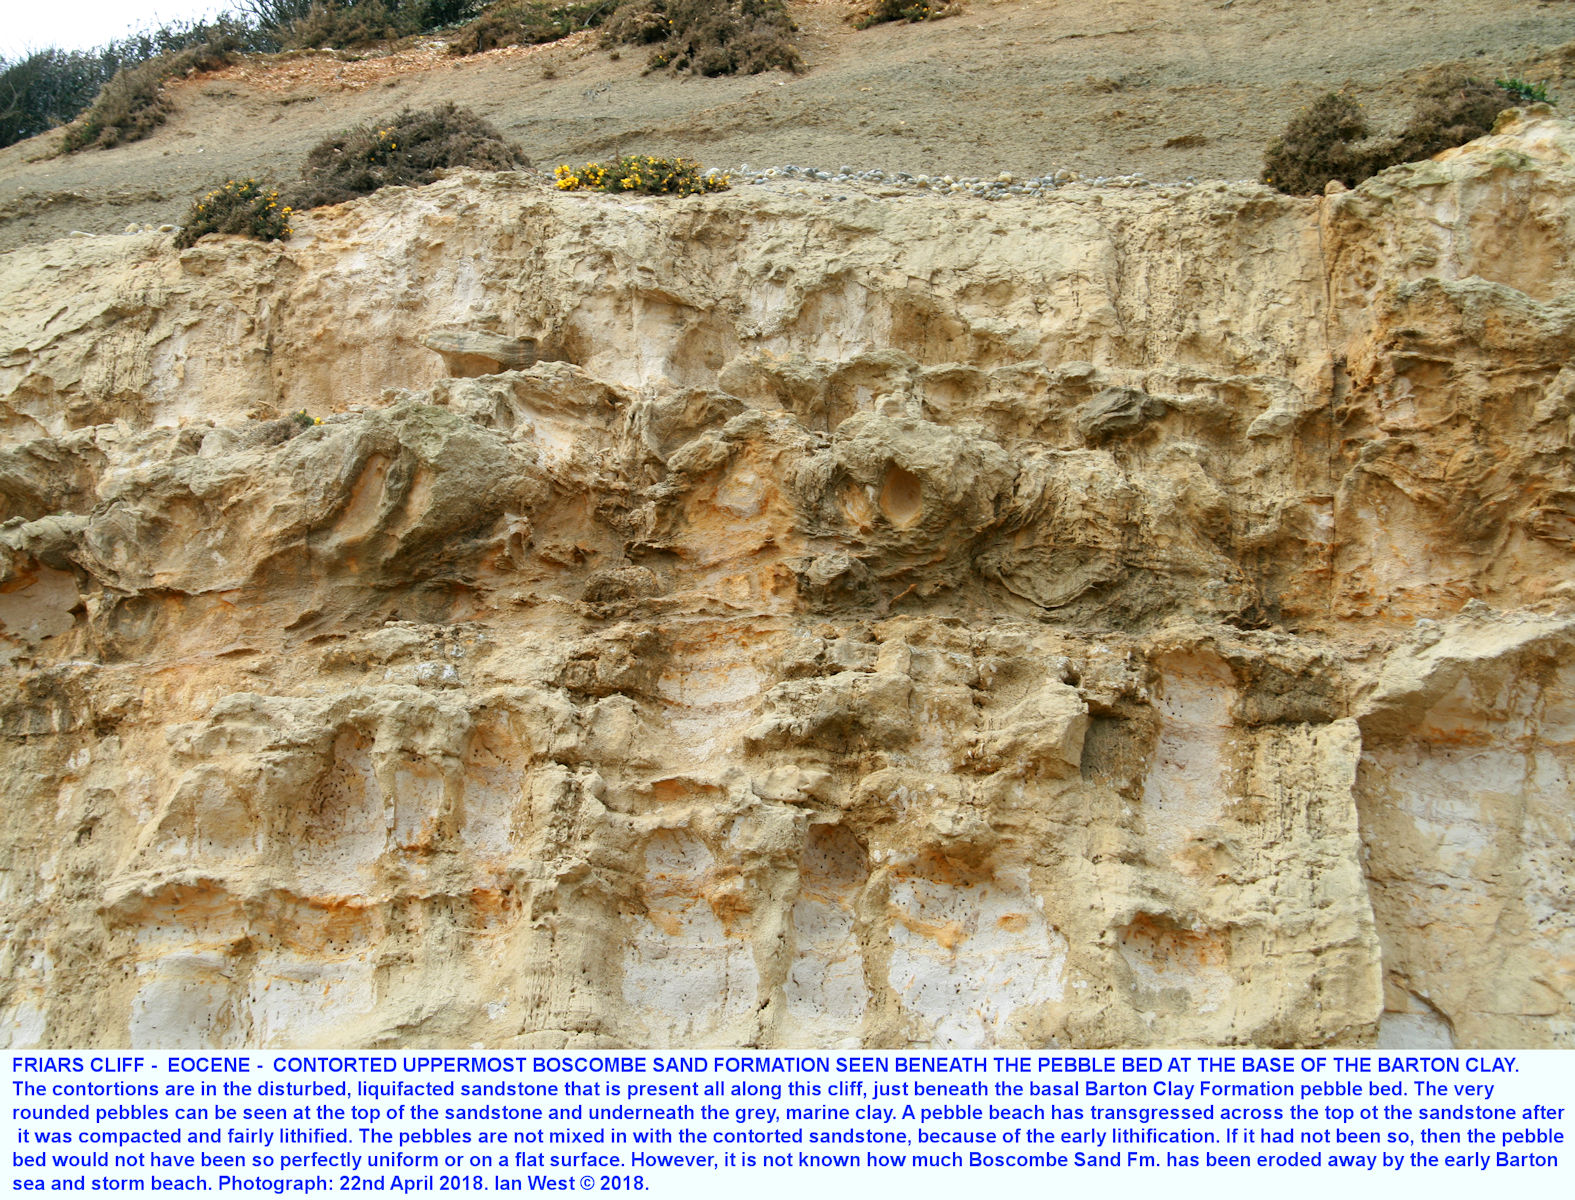 Sandstone with contortions due to penecontemporaneous liquifaction in the upper part of the Boscombe Sand Formation at Friars Cliff, near Highcliffe, April, 2018